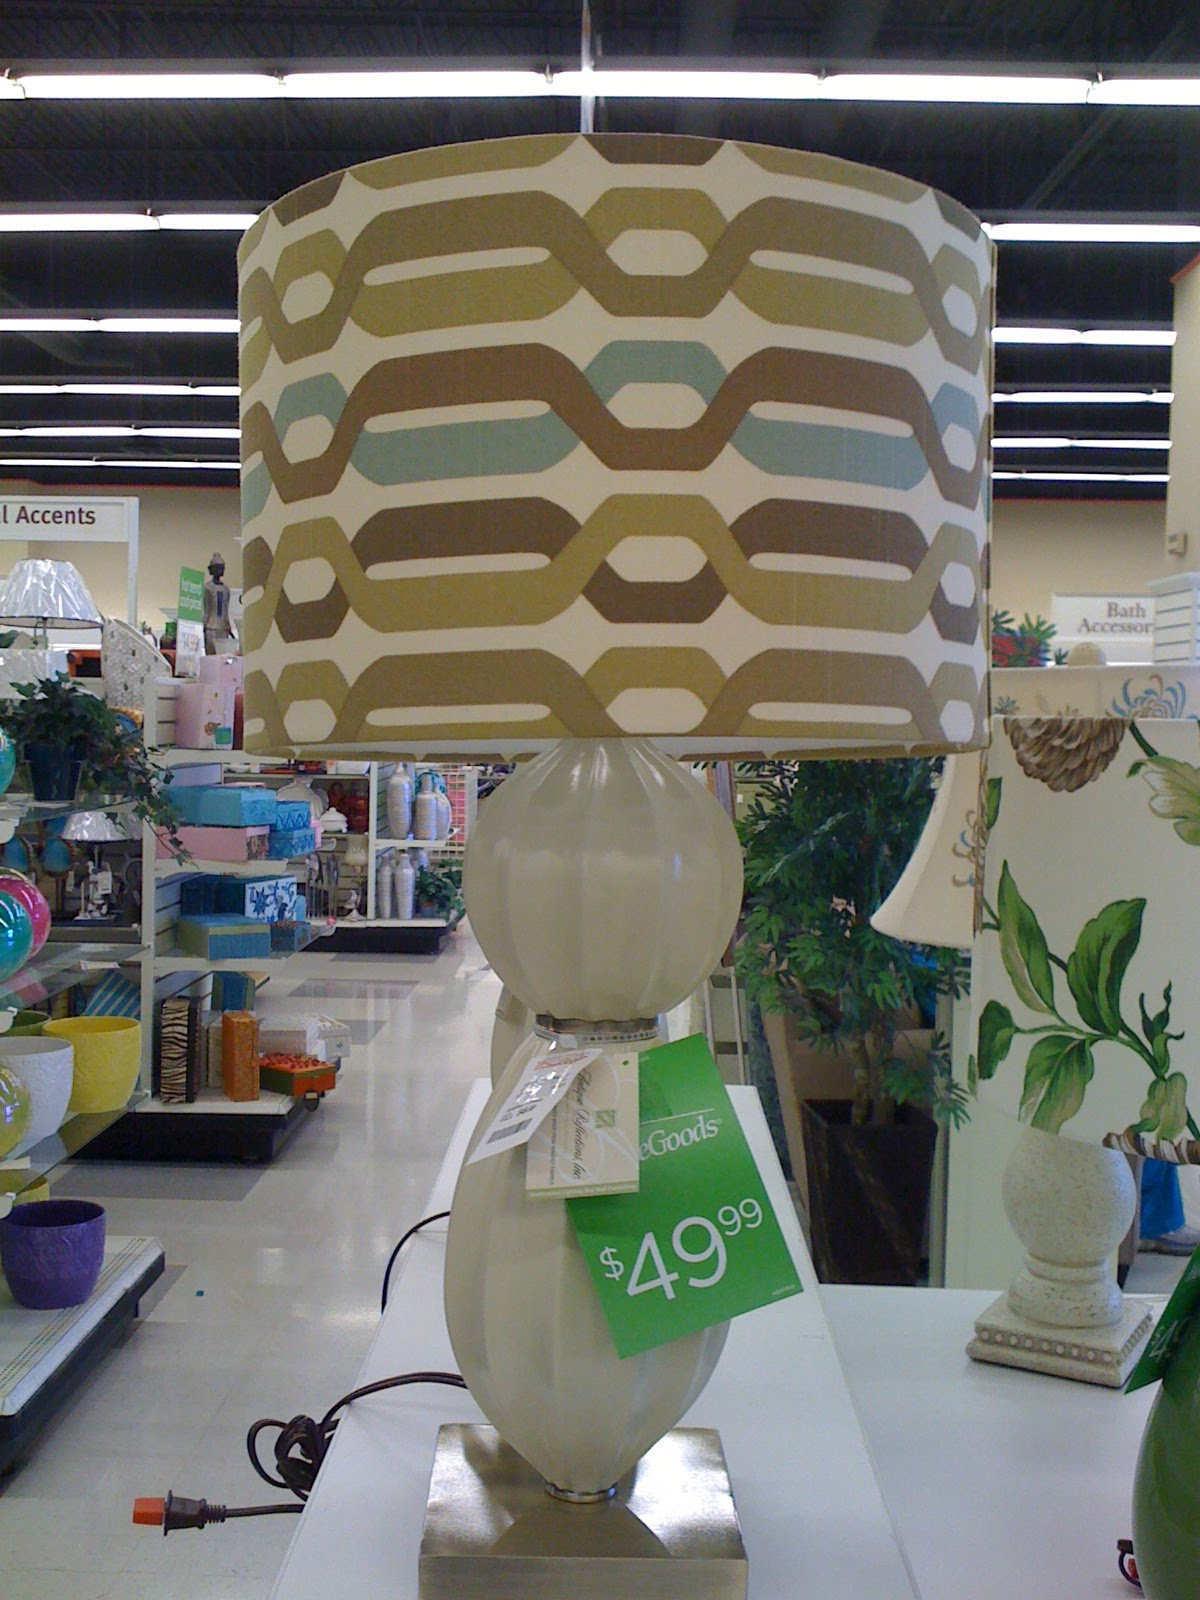 Random me emily lamps at tj maxx home goods store for Online home goods store